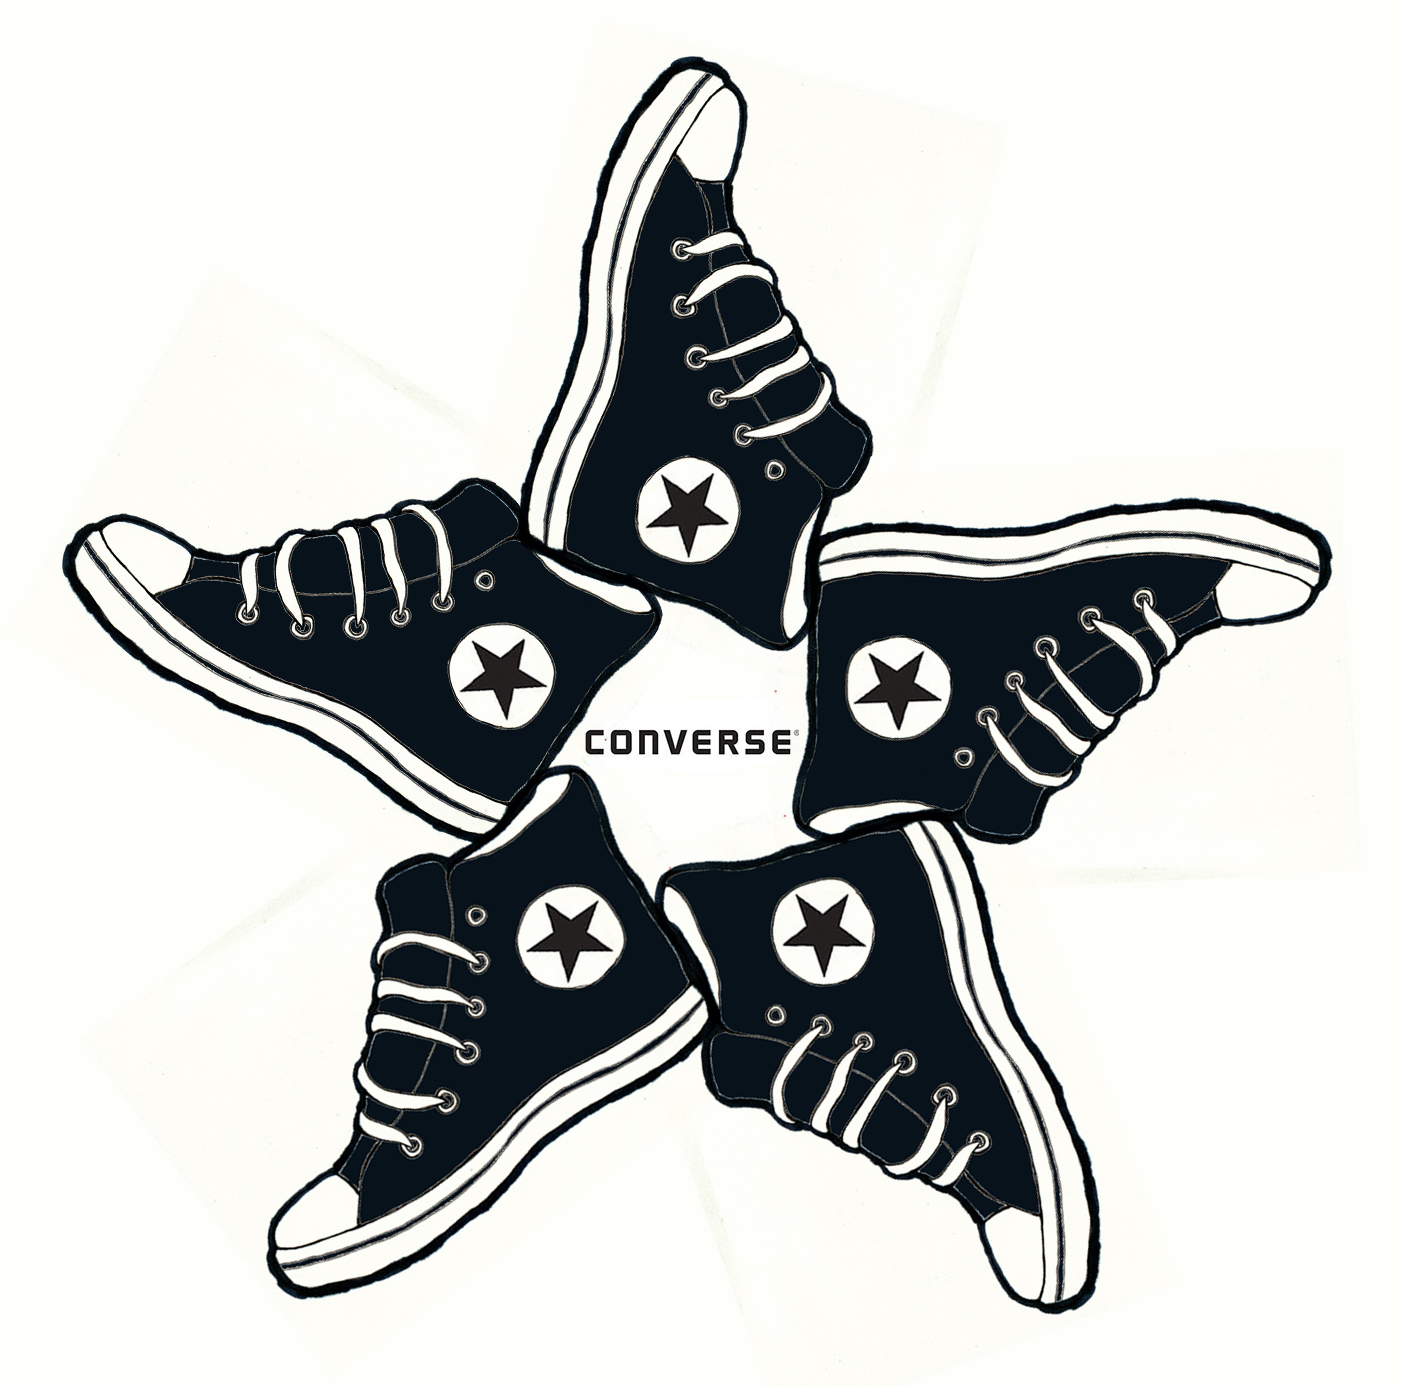 PAINTED DREAMS u0026 OTHER THINGS: CONVERSE LOGO RE-DESIGN